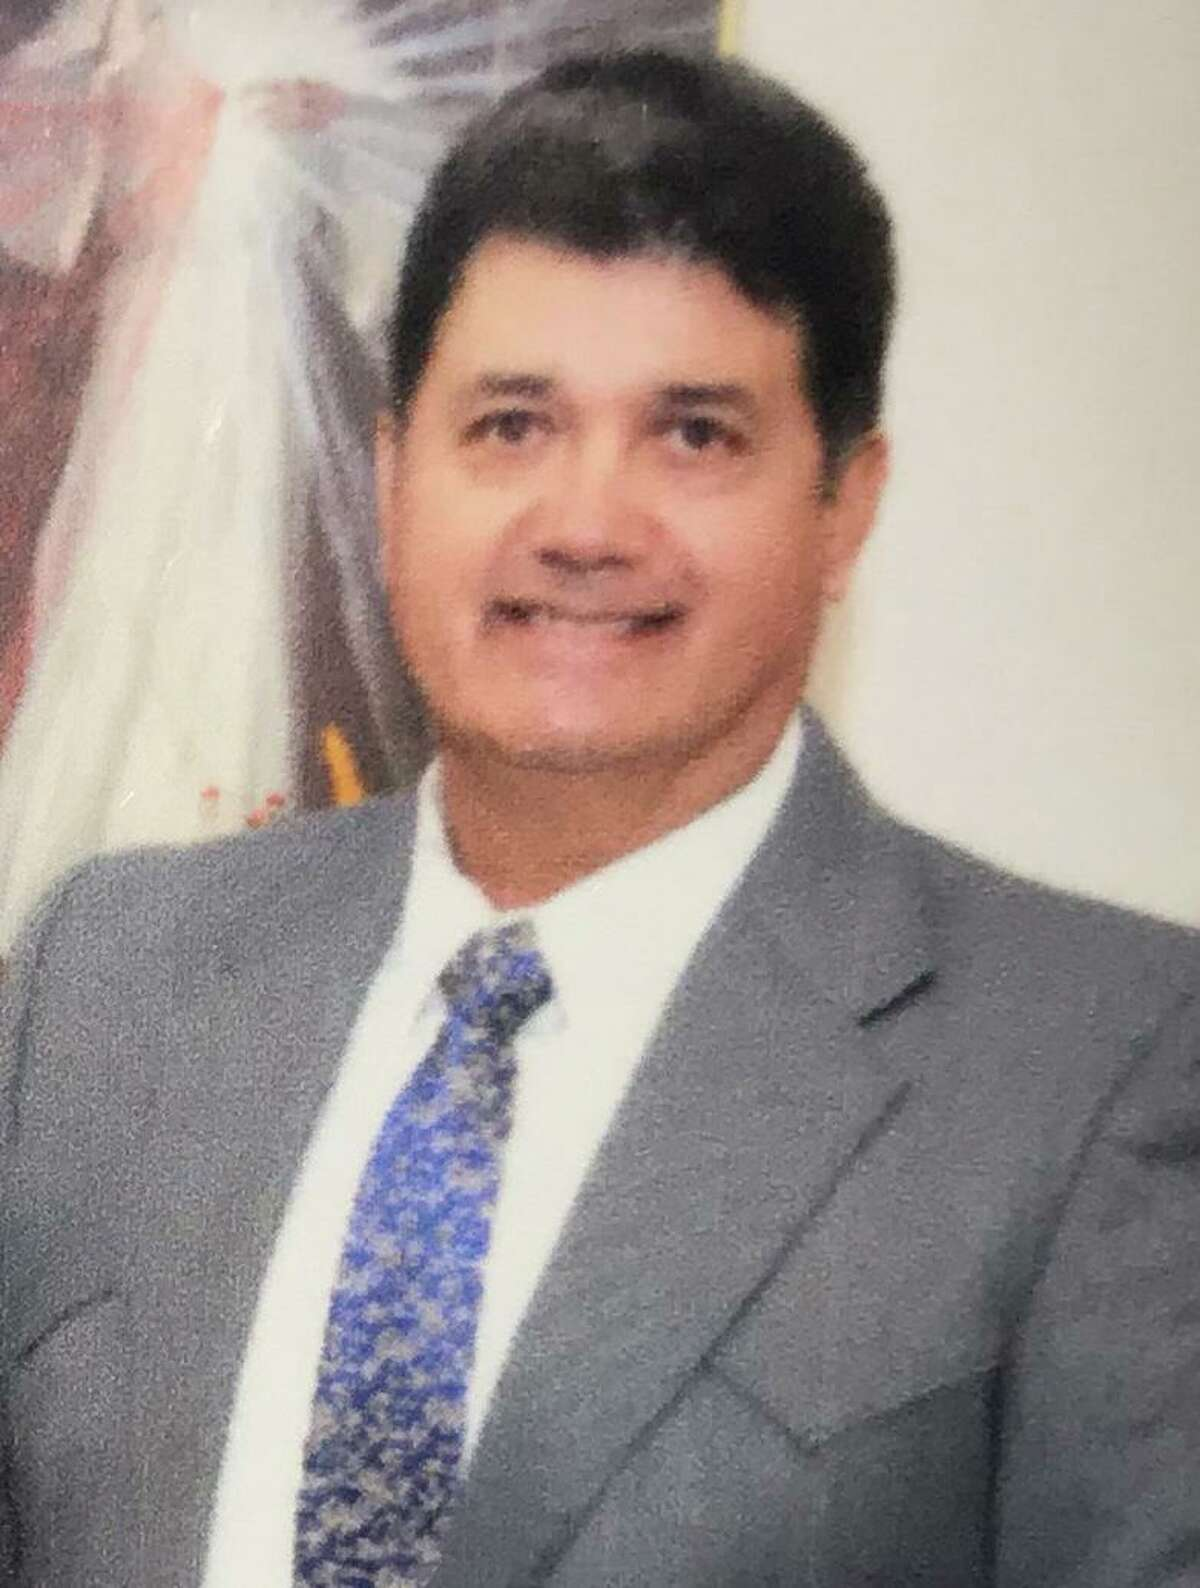 José Diaz, 55, owns a trucking company and is seeking a seat on the Southwest ISD board of trustees.